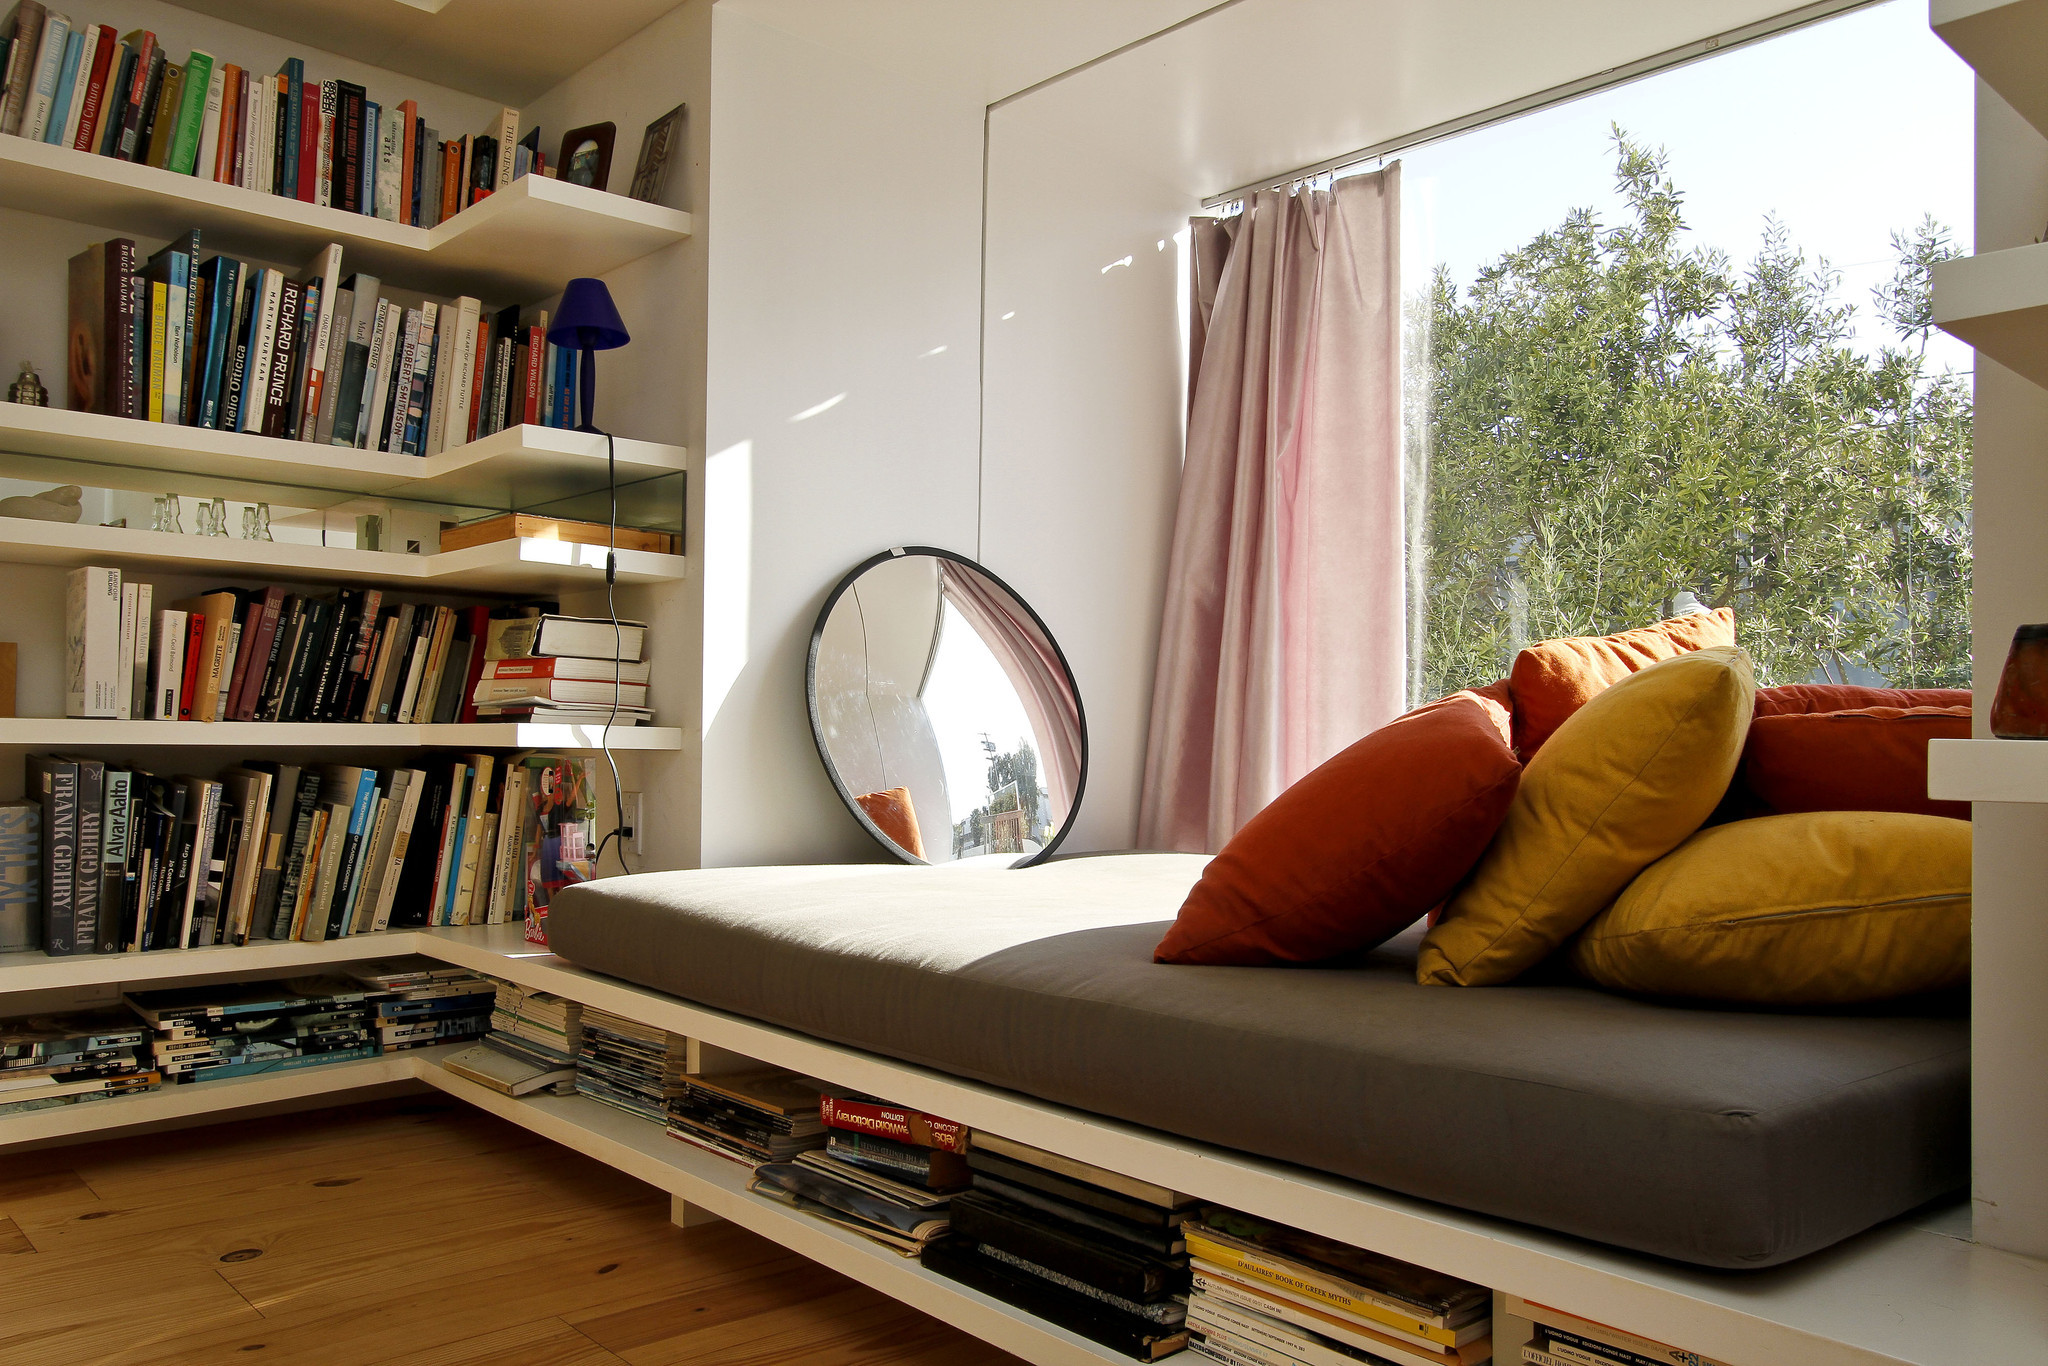 4 important things to design a reading nook homesfeed 1409334hmjohnfranehouserrd solutioingenieria Image collections